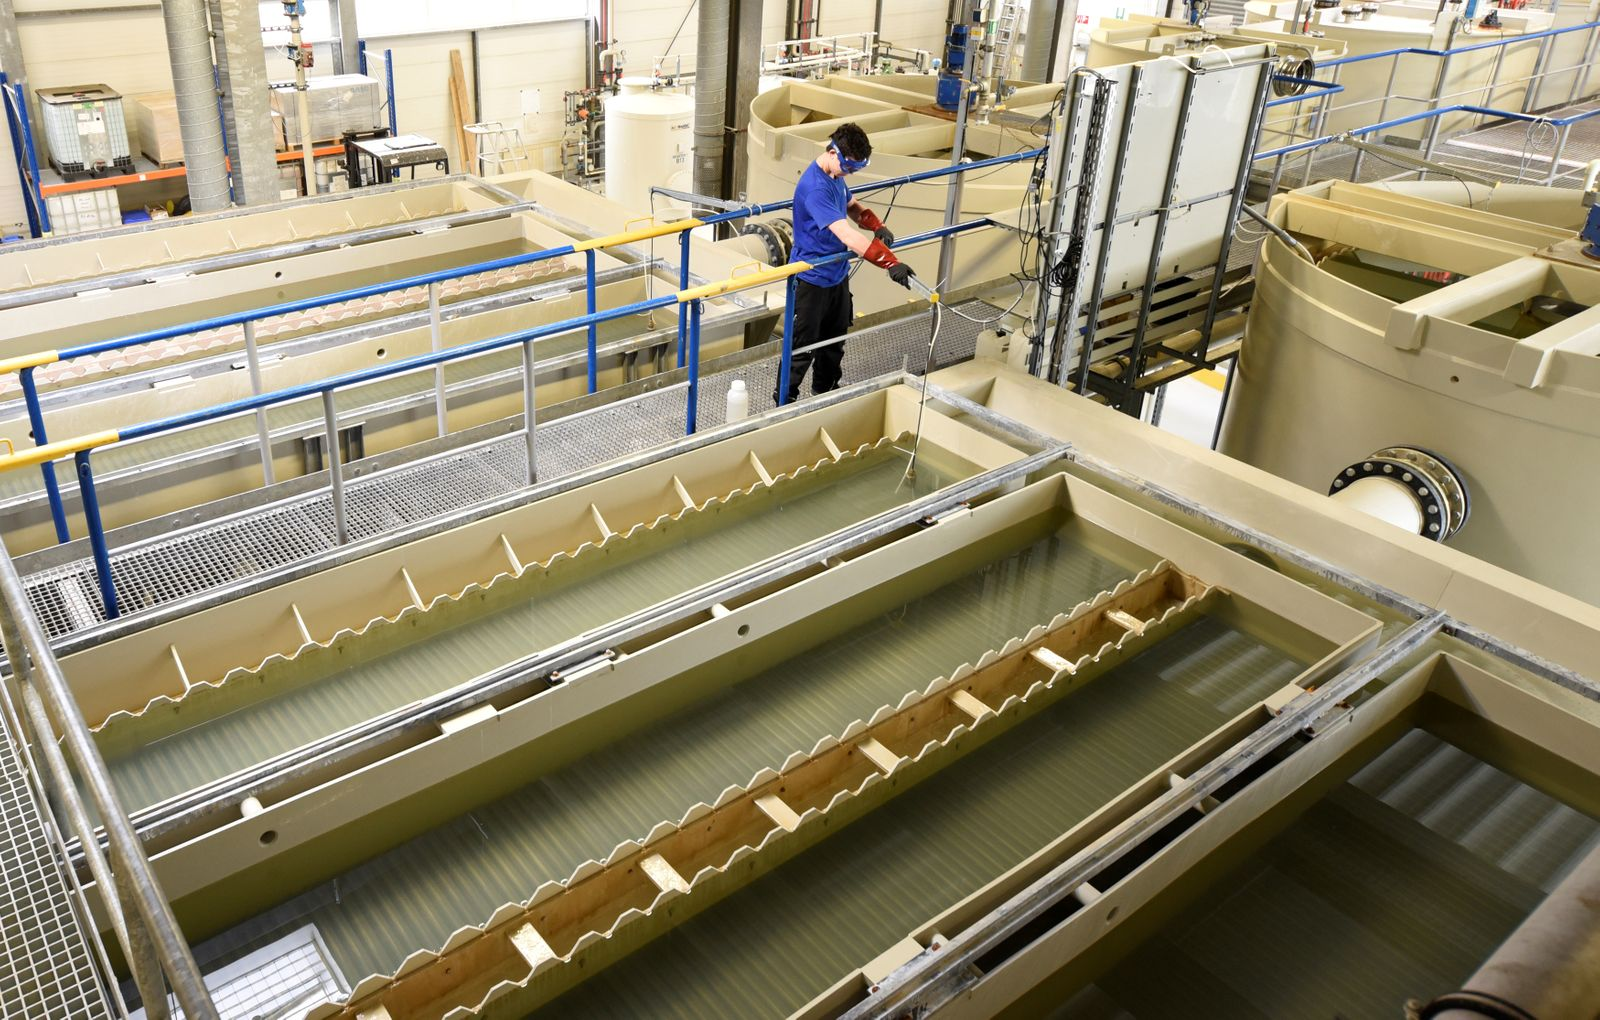 """A worker checks water in a water treatment factory, used to clear waste water from the paint shops, at the Volkswagen headquarters during a media tour to present Volkswagen's so called """"Blaue Fabrik"""" (Blue Factory) environmental program, in Wolfsburg"""